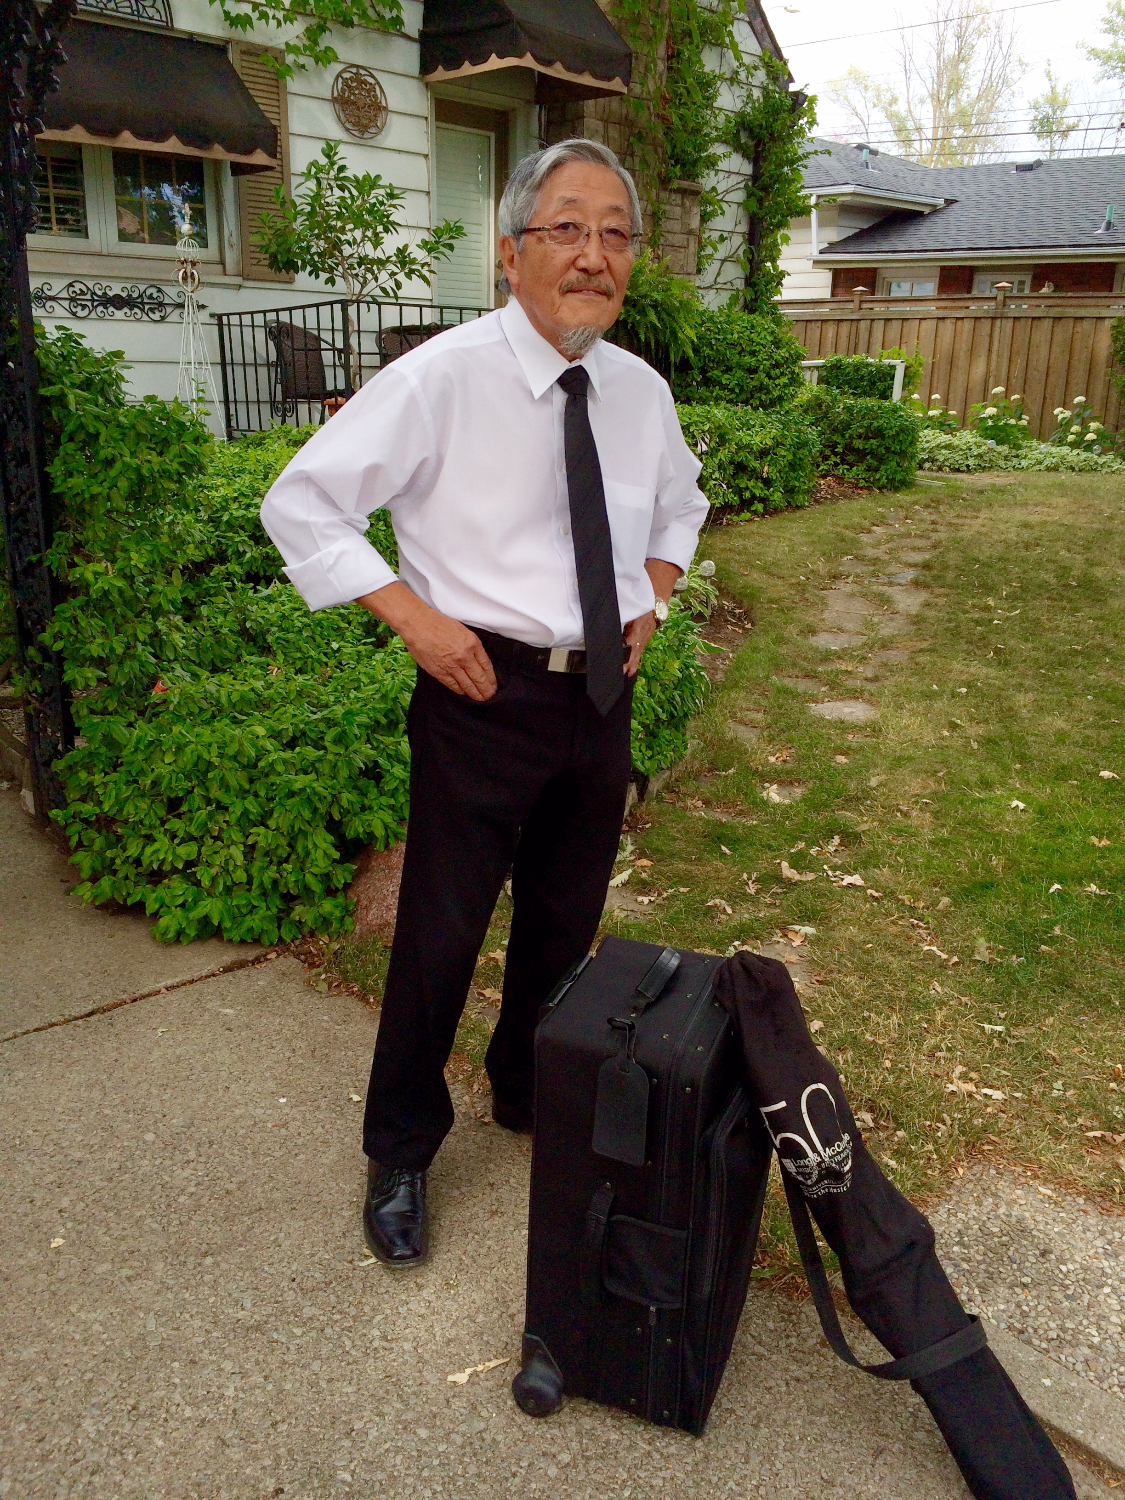 Wes Otsuka, Former Conductor.